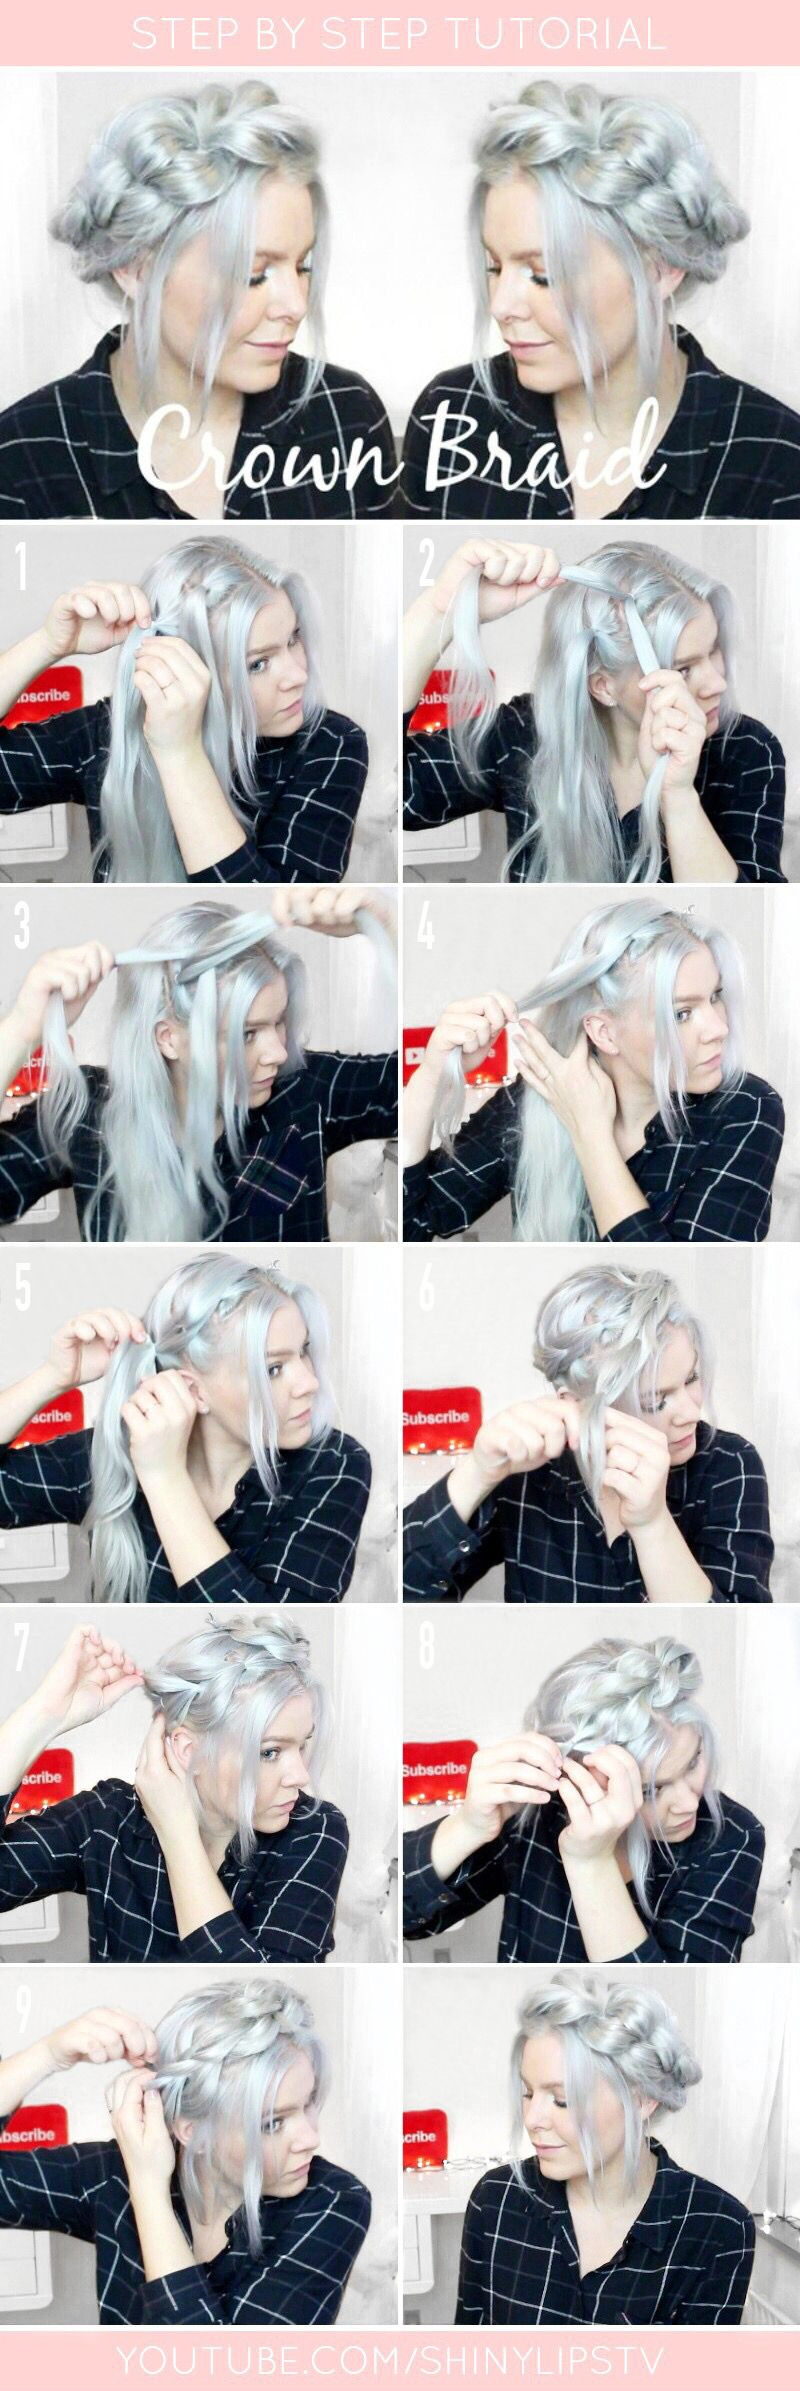 Best Hairstyle For Long Curly Hair | Crown braids, Hair style and ...